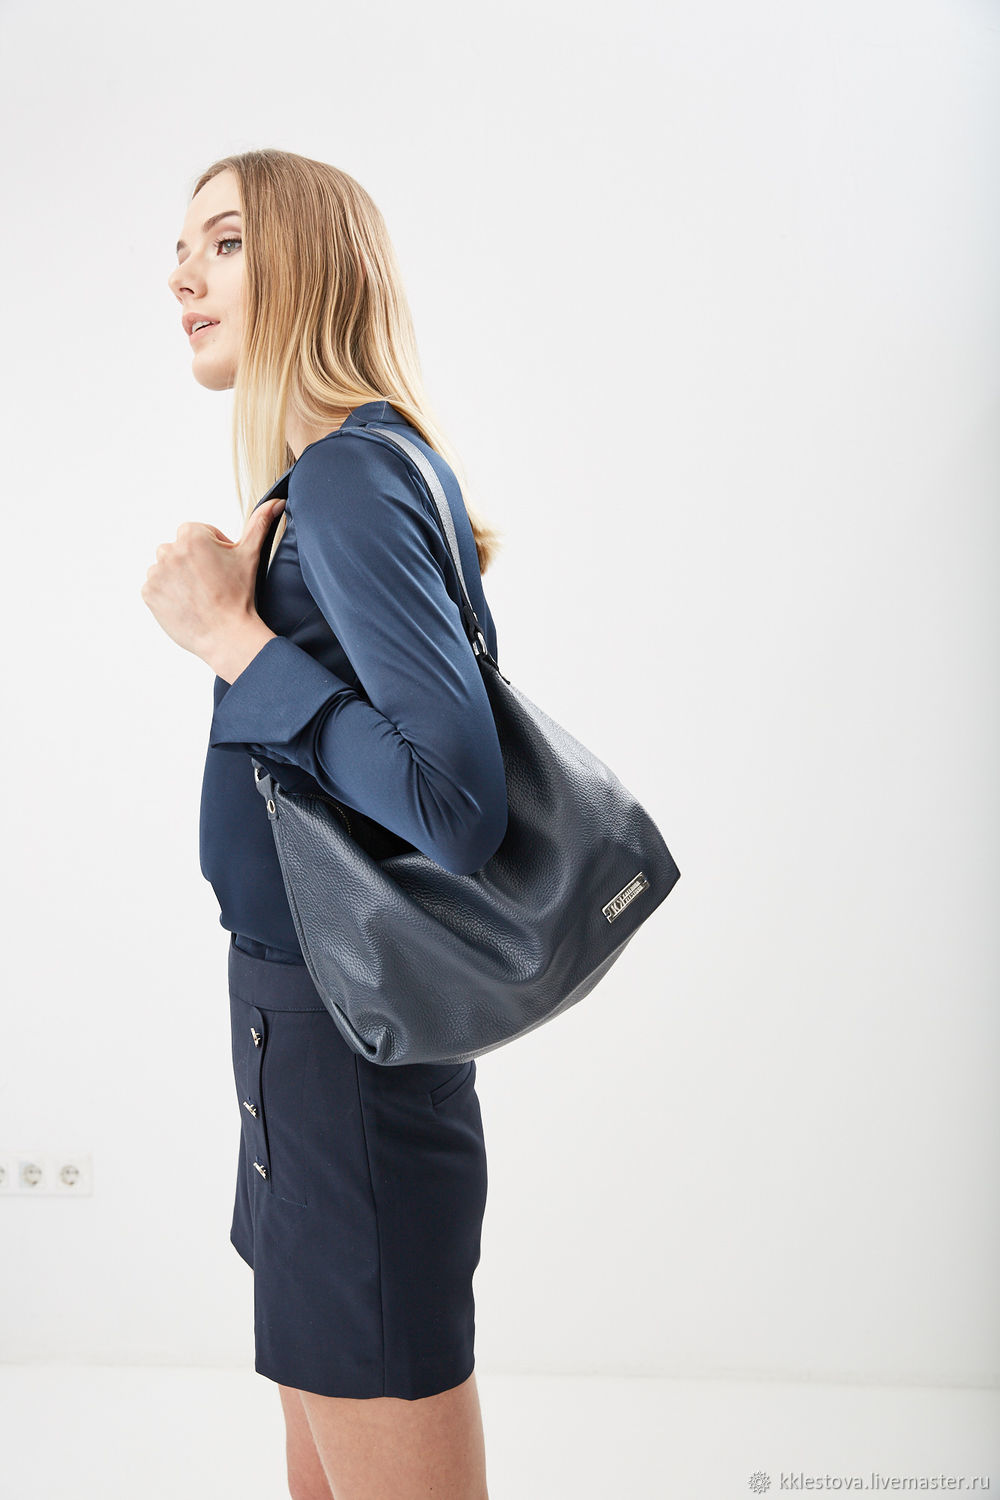 Blue soft shoulder strap Bag with inner pocket, Sacks, Moscow,  Фото №1